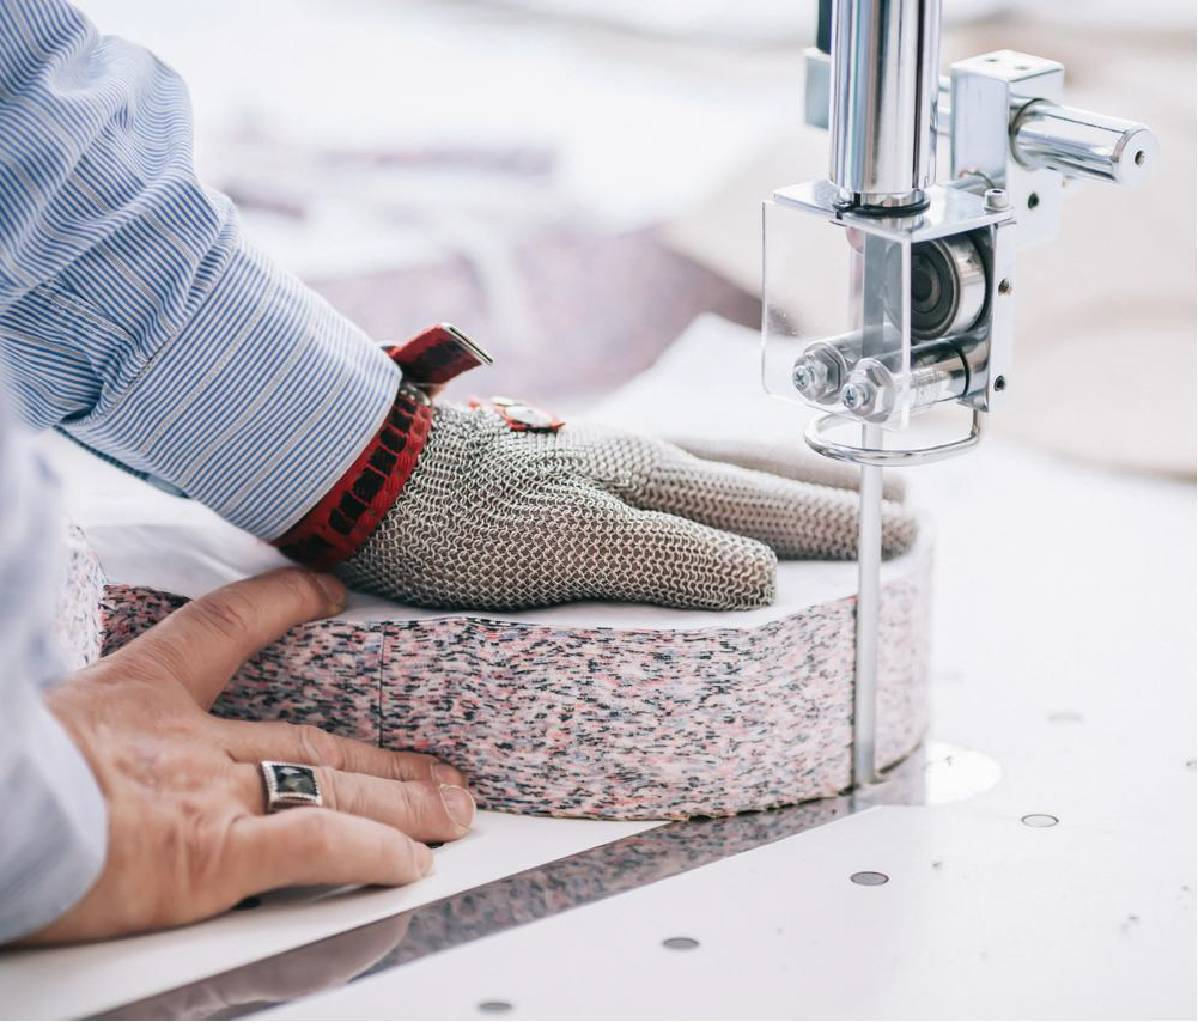 Man wearing safety glove cutting colourful fabric with a cutting machine